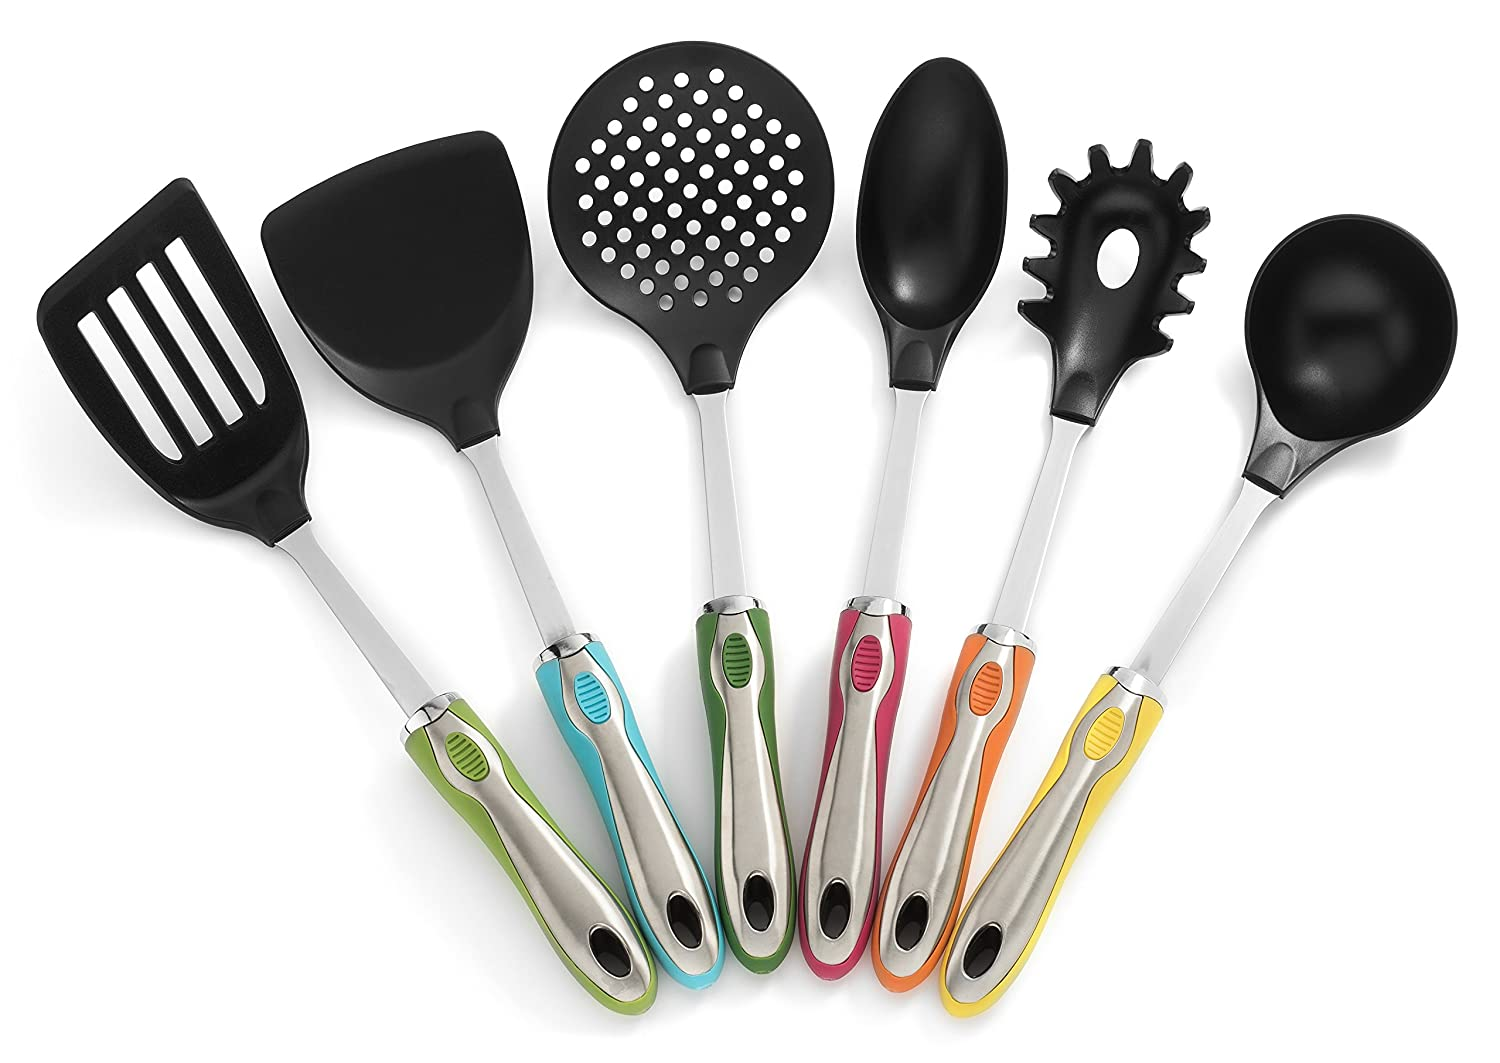 Amazon.com: Kitchen Utensils With Holder 7 Pc Cute Utensil Set   Colorful  Handles, Stainless Steel Core And Large Nylon Heads By RSG: Kitchen U0026 Dining